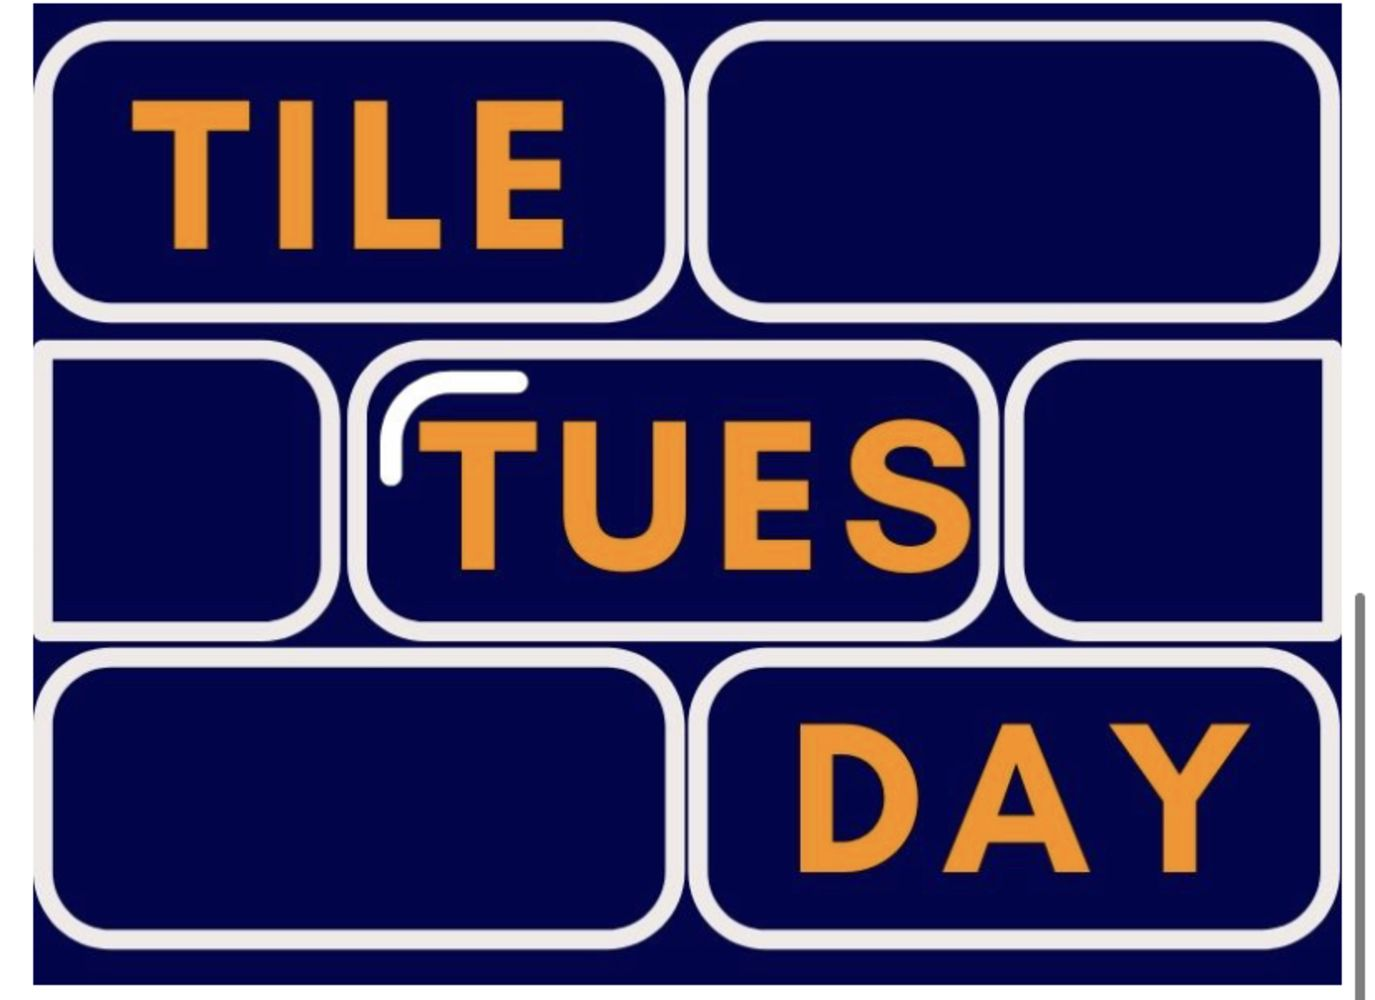 """No Reserve - Tile Tuesday - """"over £80k worth of tiles – Sourced from Johnsons Tiles"""" - 6th April"""